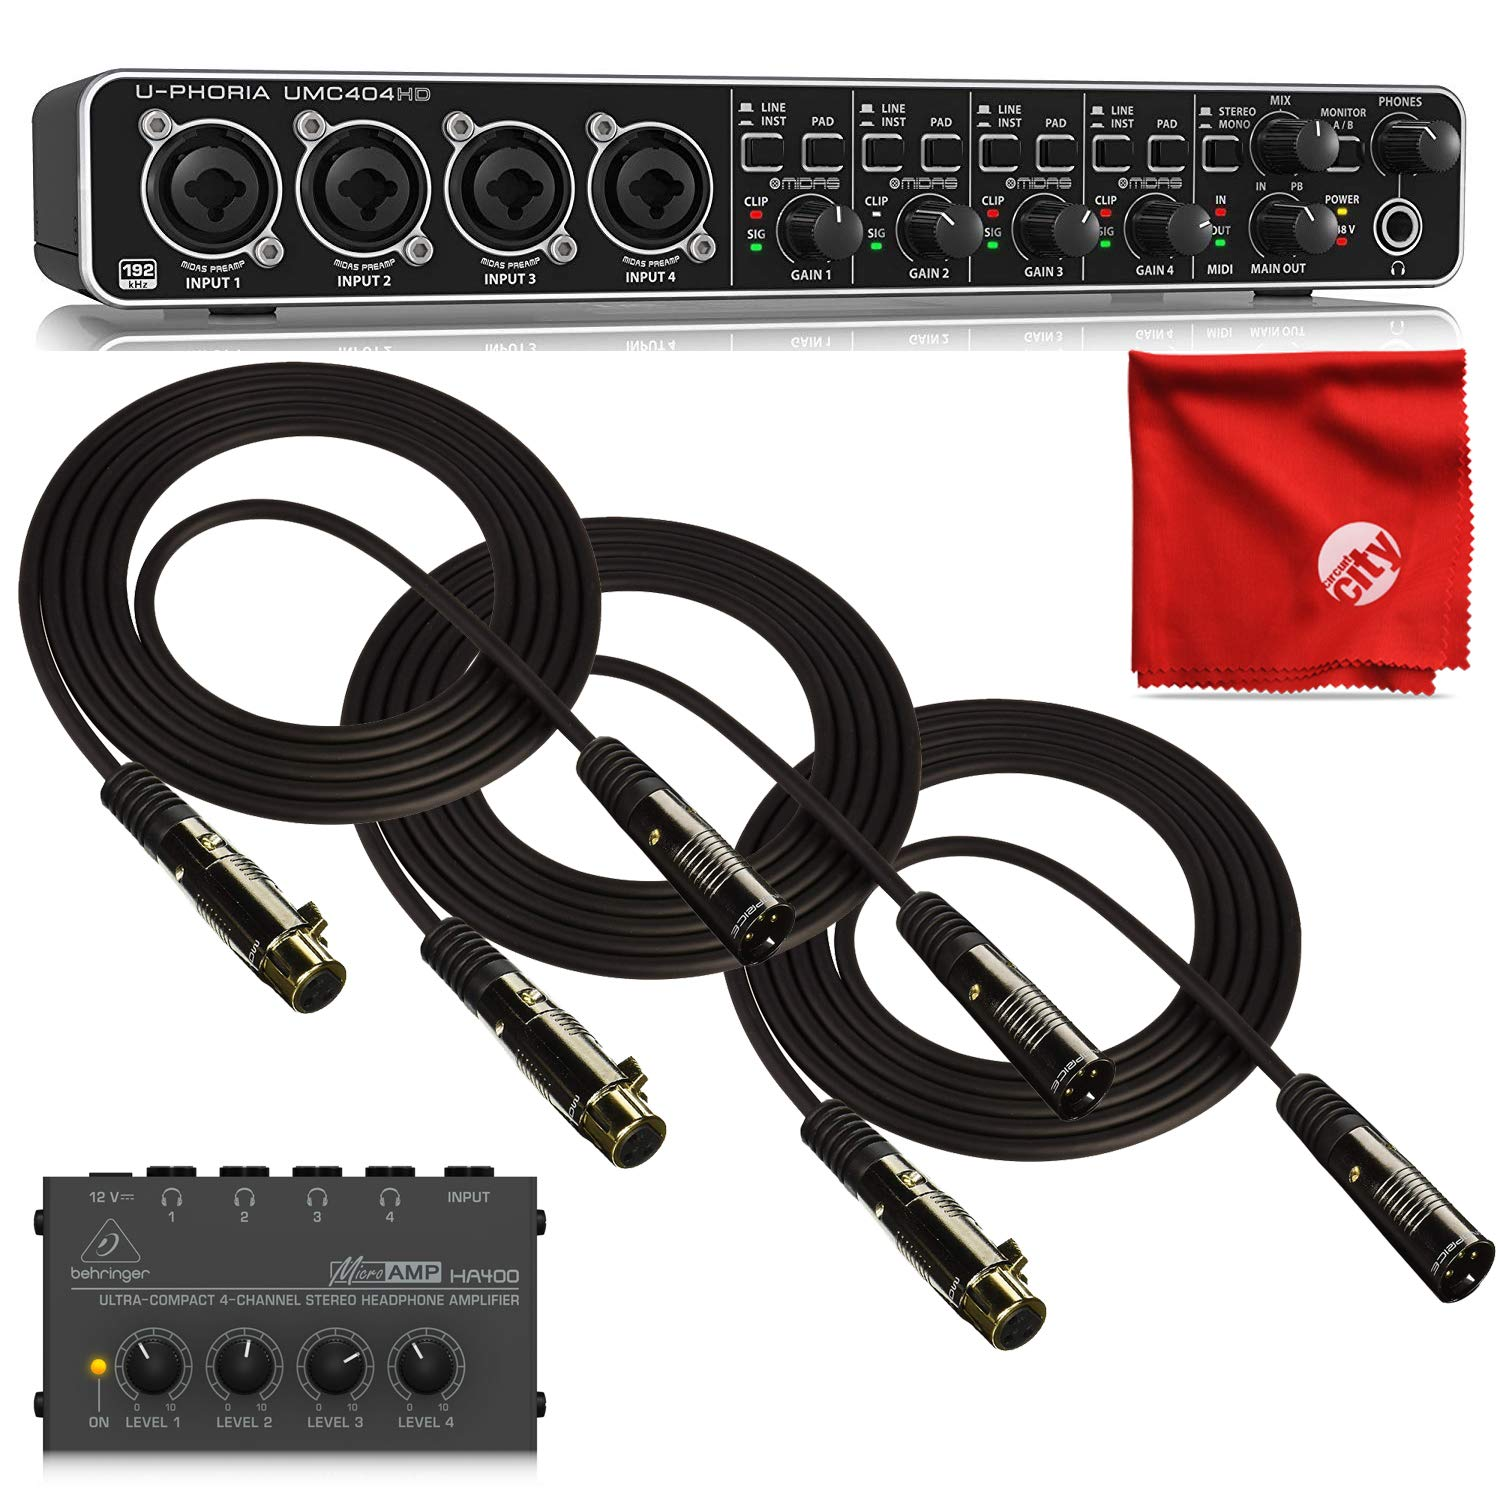 Behringer UMC404HD Audio Interface 4-Channel Bundle with HA400 4-Channel Headphone Amplifier and 3X Monoprice Gold Plated 10ft XLR Cables with Microfiber Cleaning Cloth by Circuit City (Image #1)